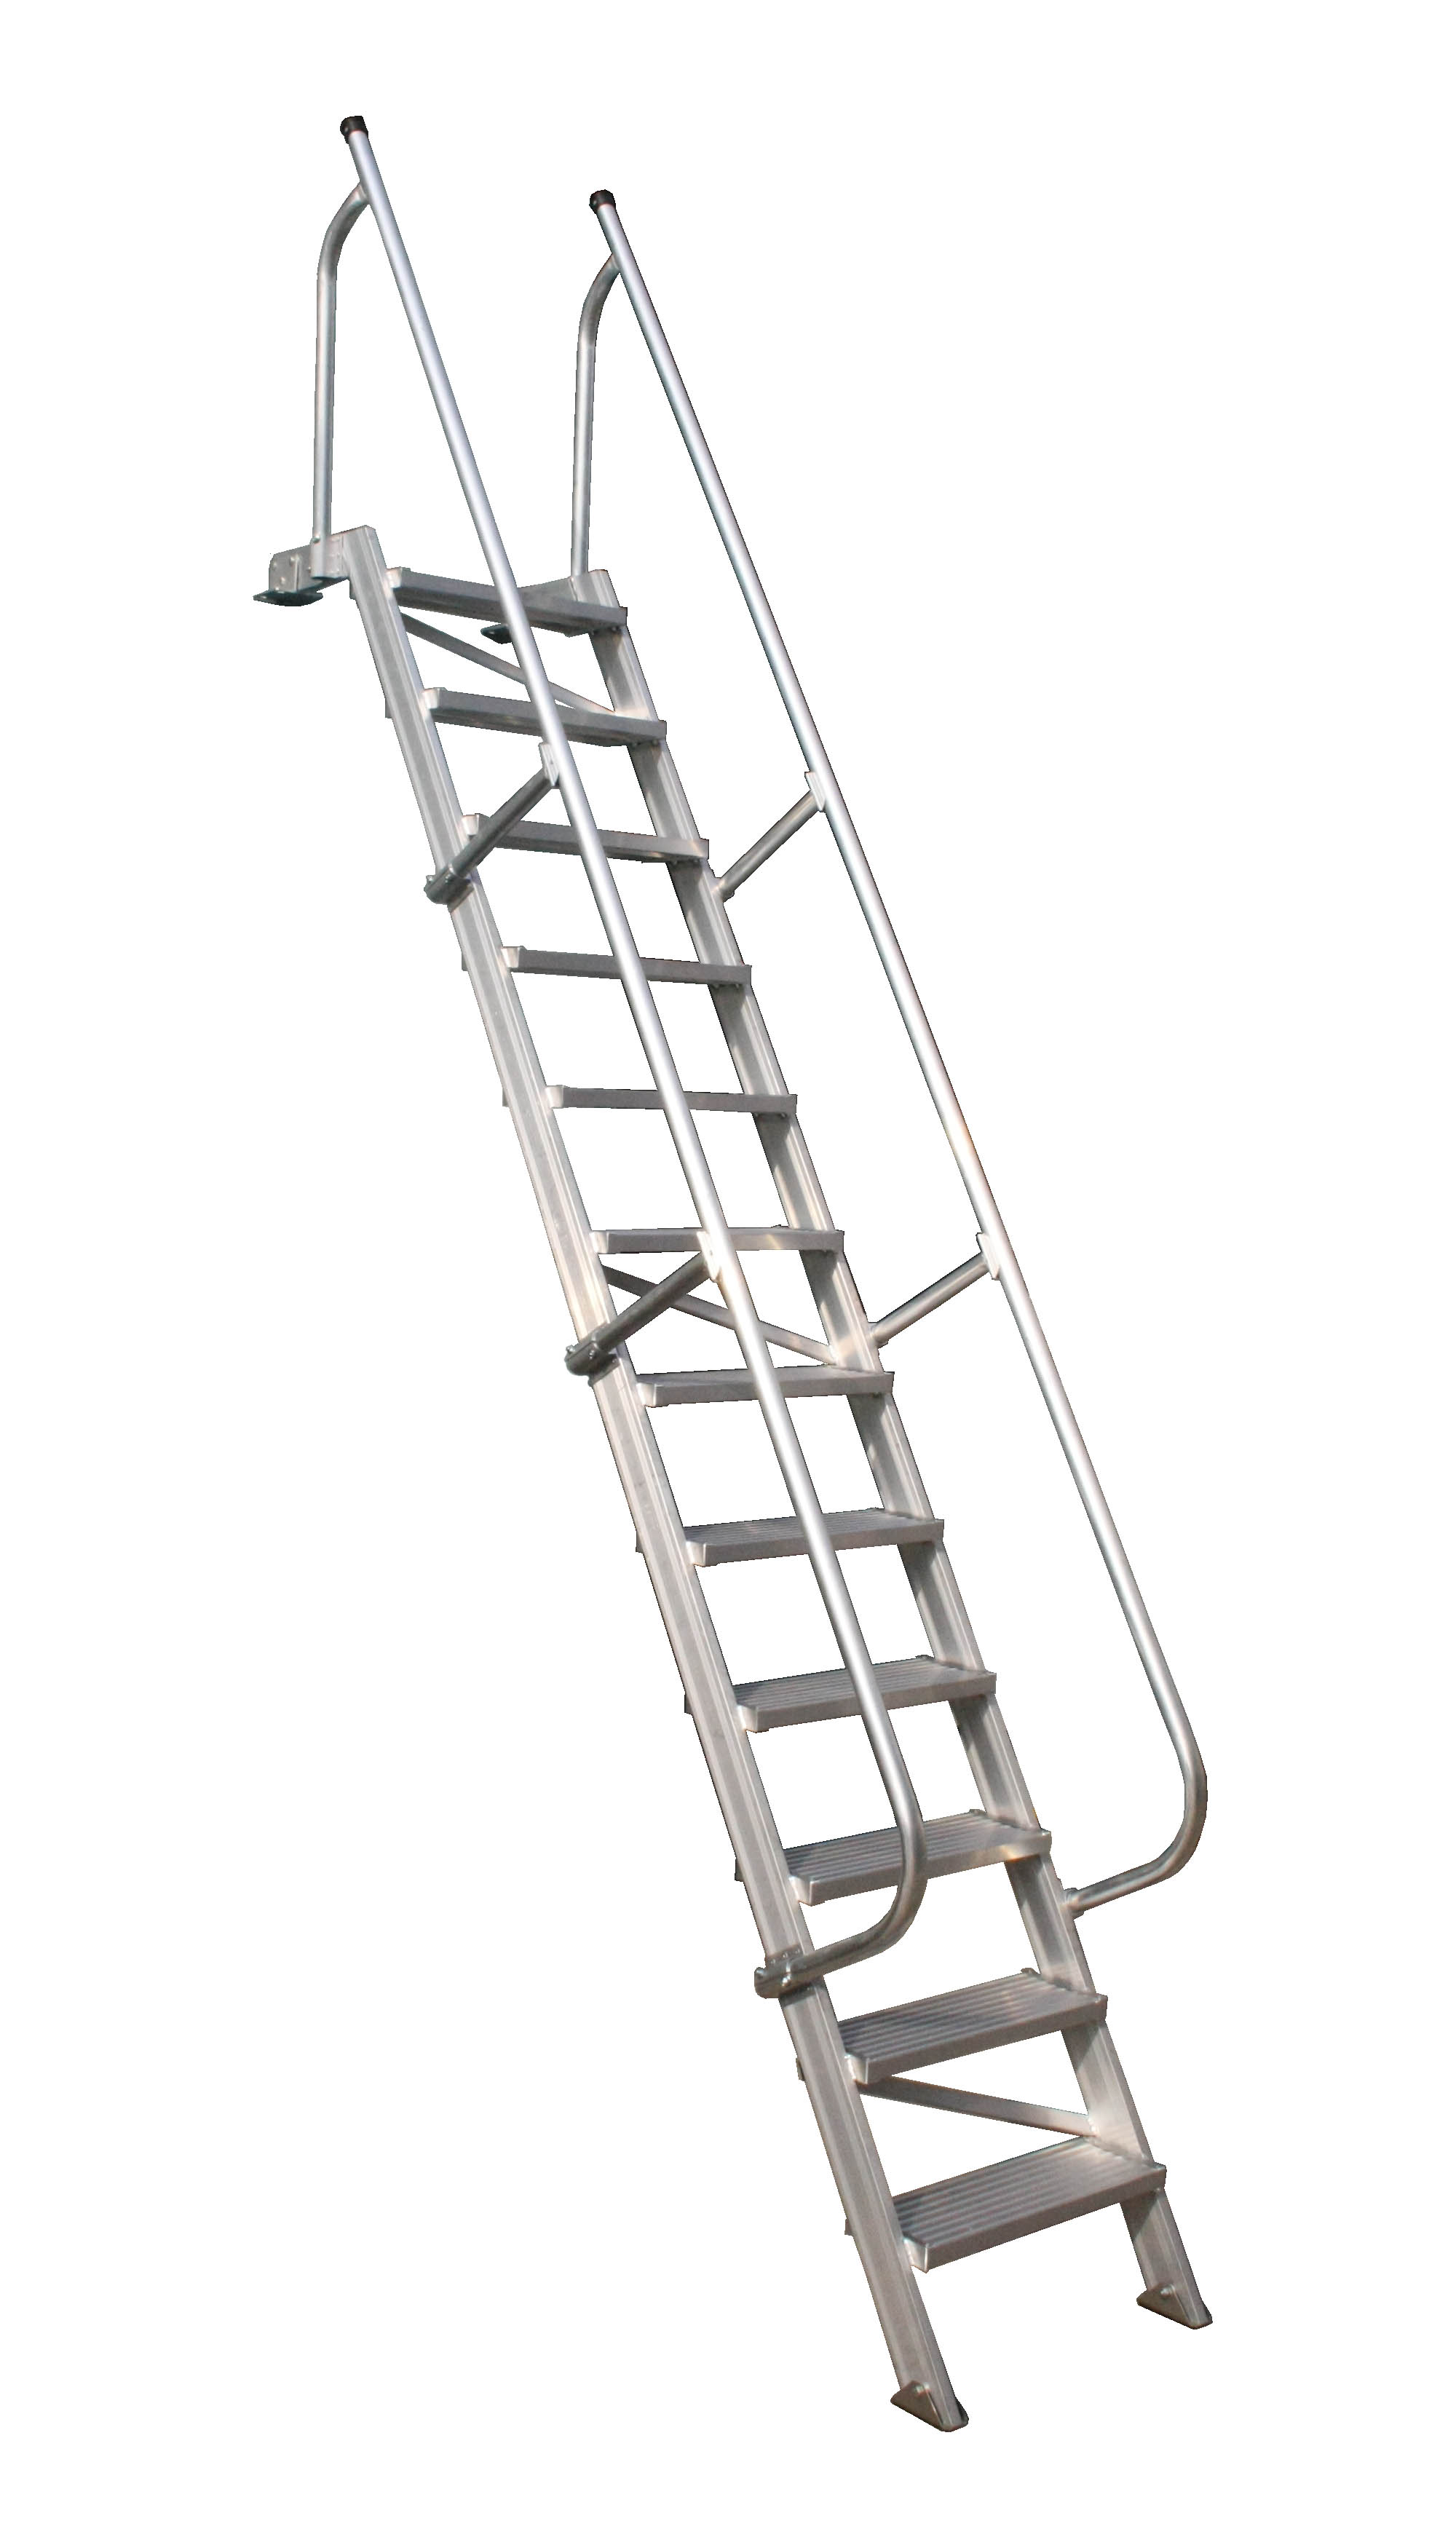 Main-Full Bulwark ladder pic.jpg